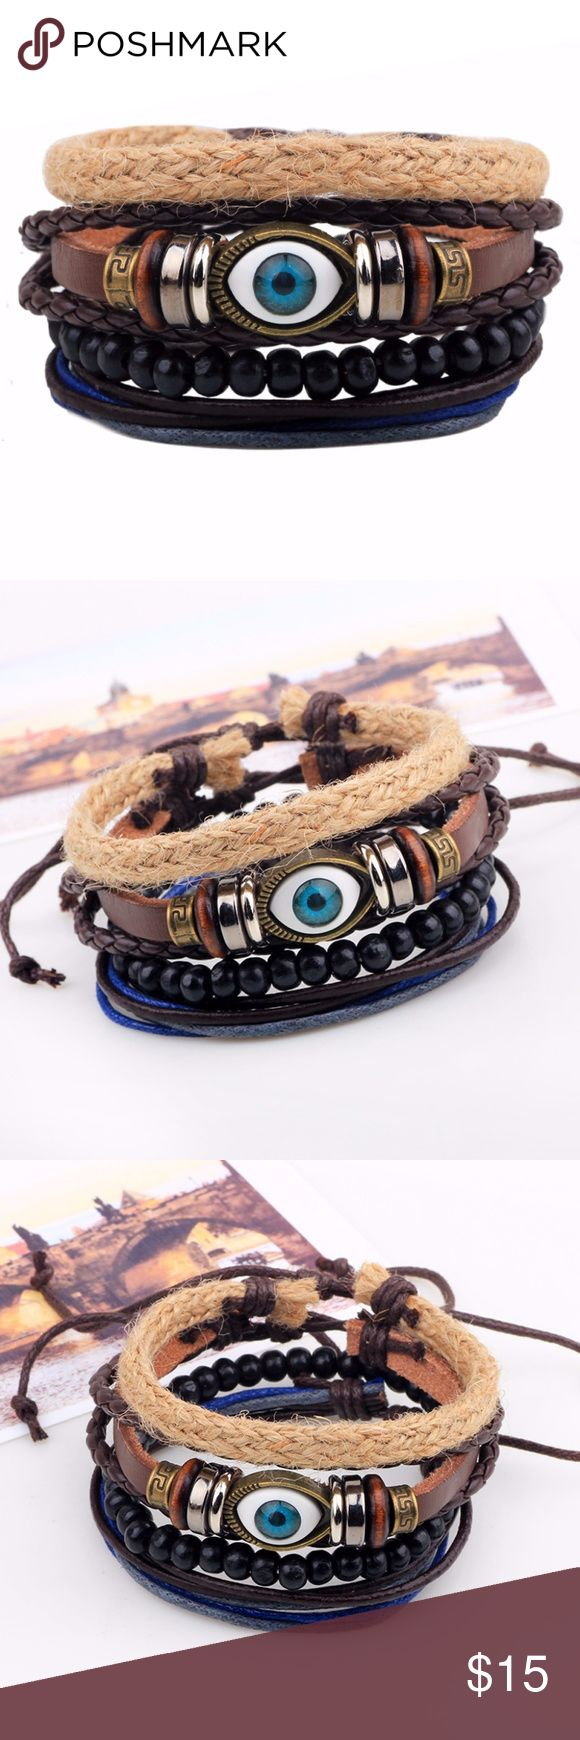 "4 pieces a set Fashion Jewelry Bracelets Evil Eye Assorted Leather Bracelet Braid Hemp Cord Feature: fashion, vintage, handmade  Material: leather, coconut beads, hemp cord, braid belt  Specifications: 2.5"" in dia, 7""-8"" in length, adjustable size  Makes a great gift for friend and family or self purchase Jewelry Bracelets"